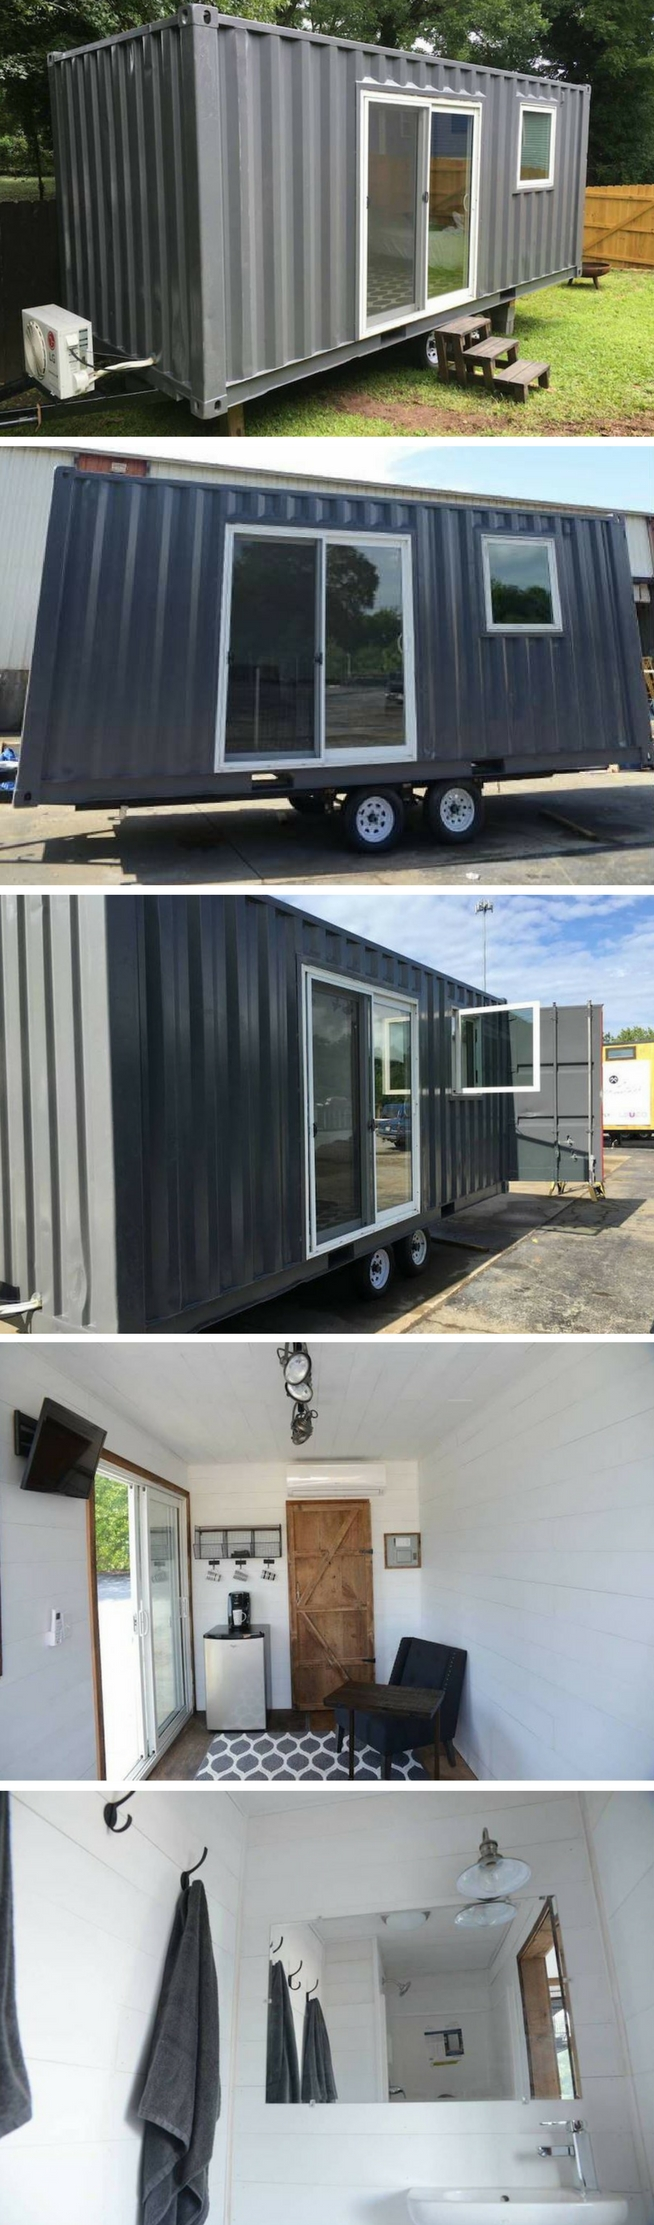 Best Kitchen Gallery: Atlanta Tiny Shipping Container House House Mini Fridge And Full Bath of Shipping Container Bath on rachelxblog.com